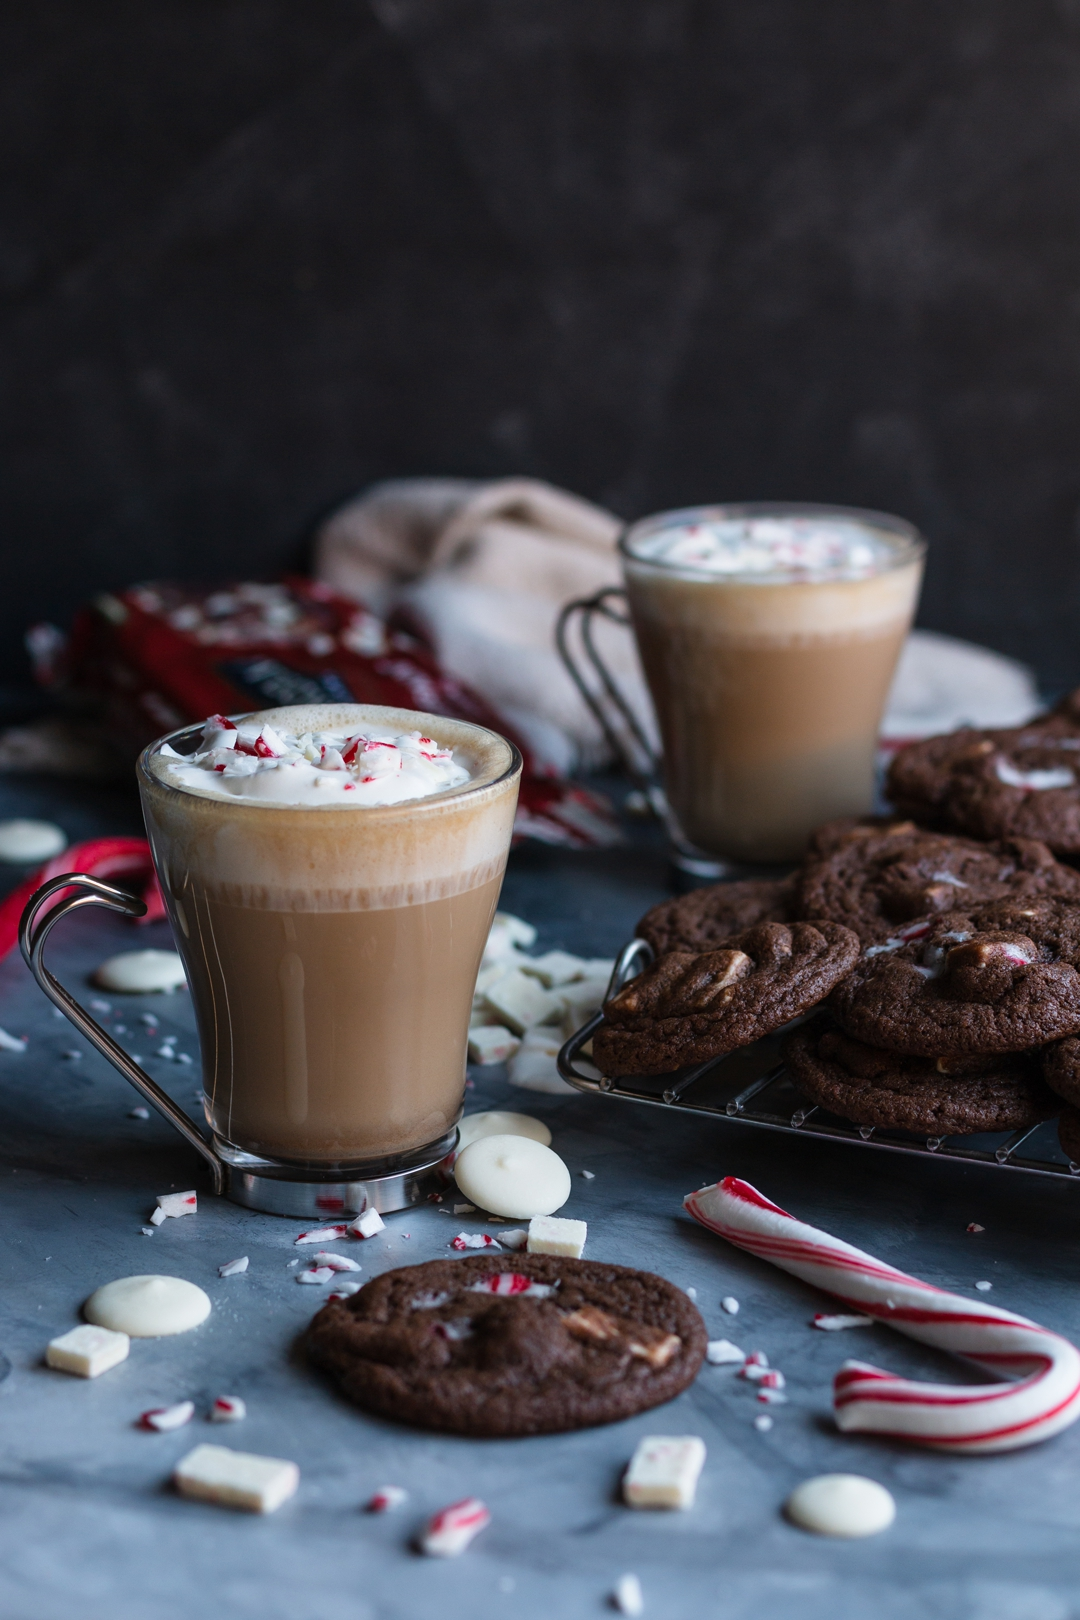 30 degree shot of latte surrounded by cookies, candy canes, white chocolate, and peppermint chips.